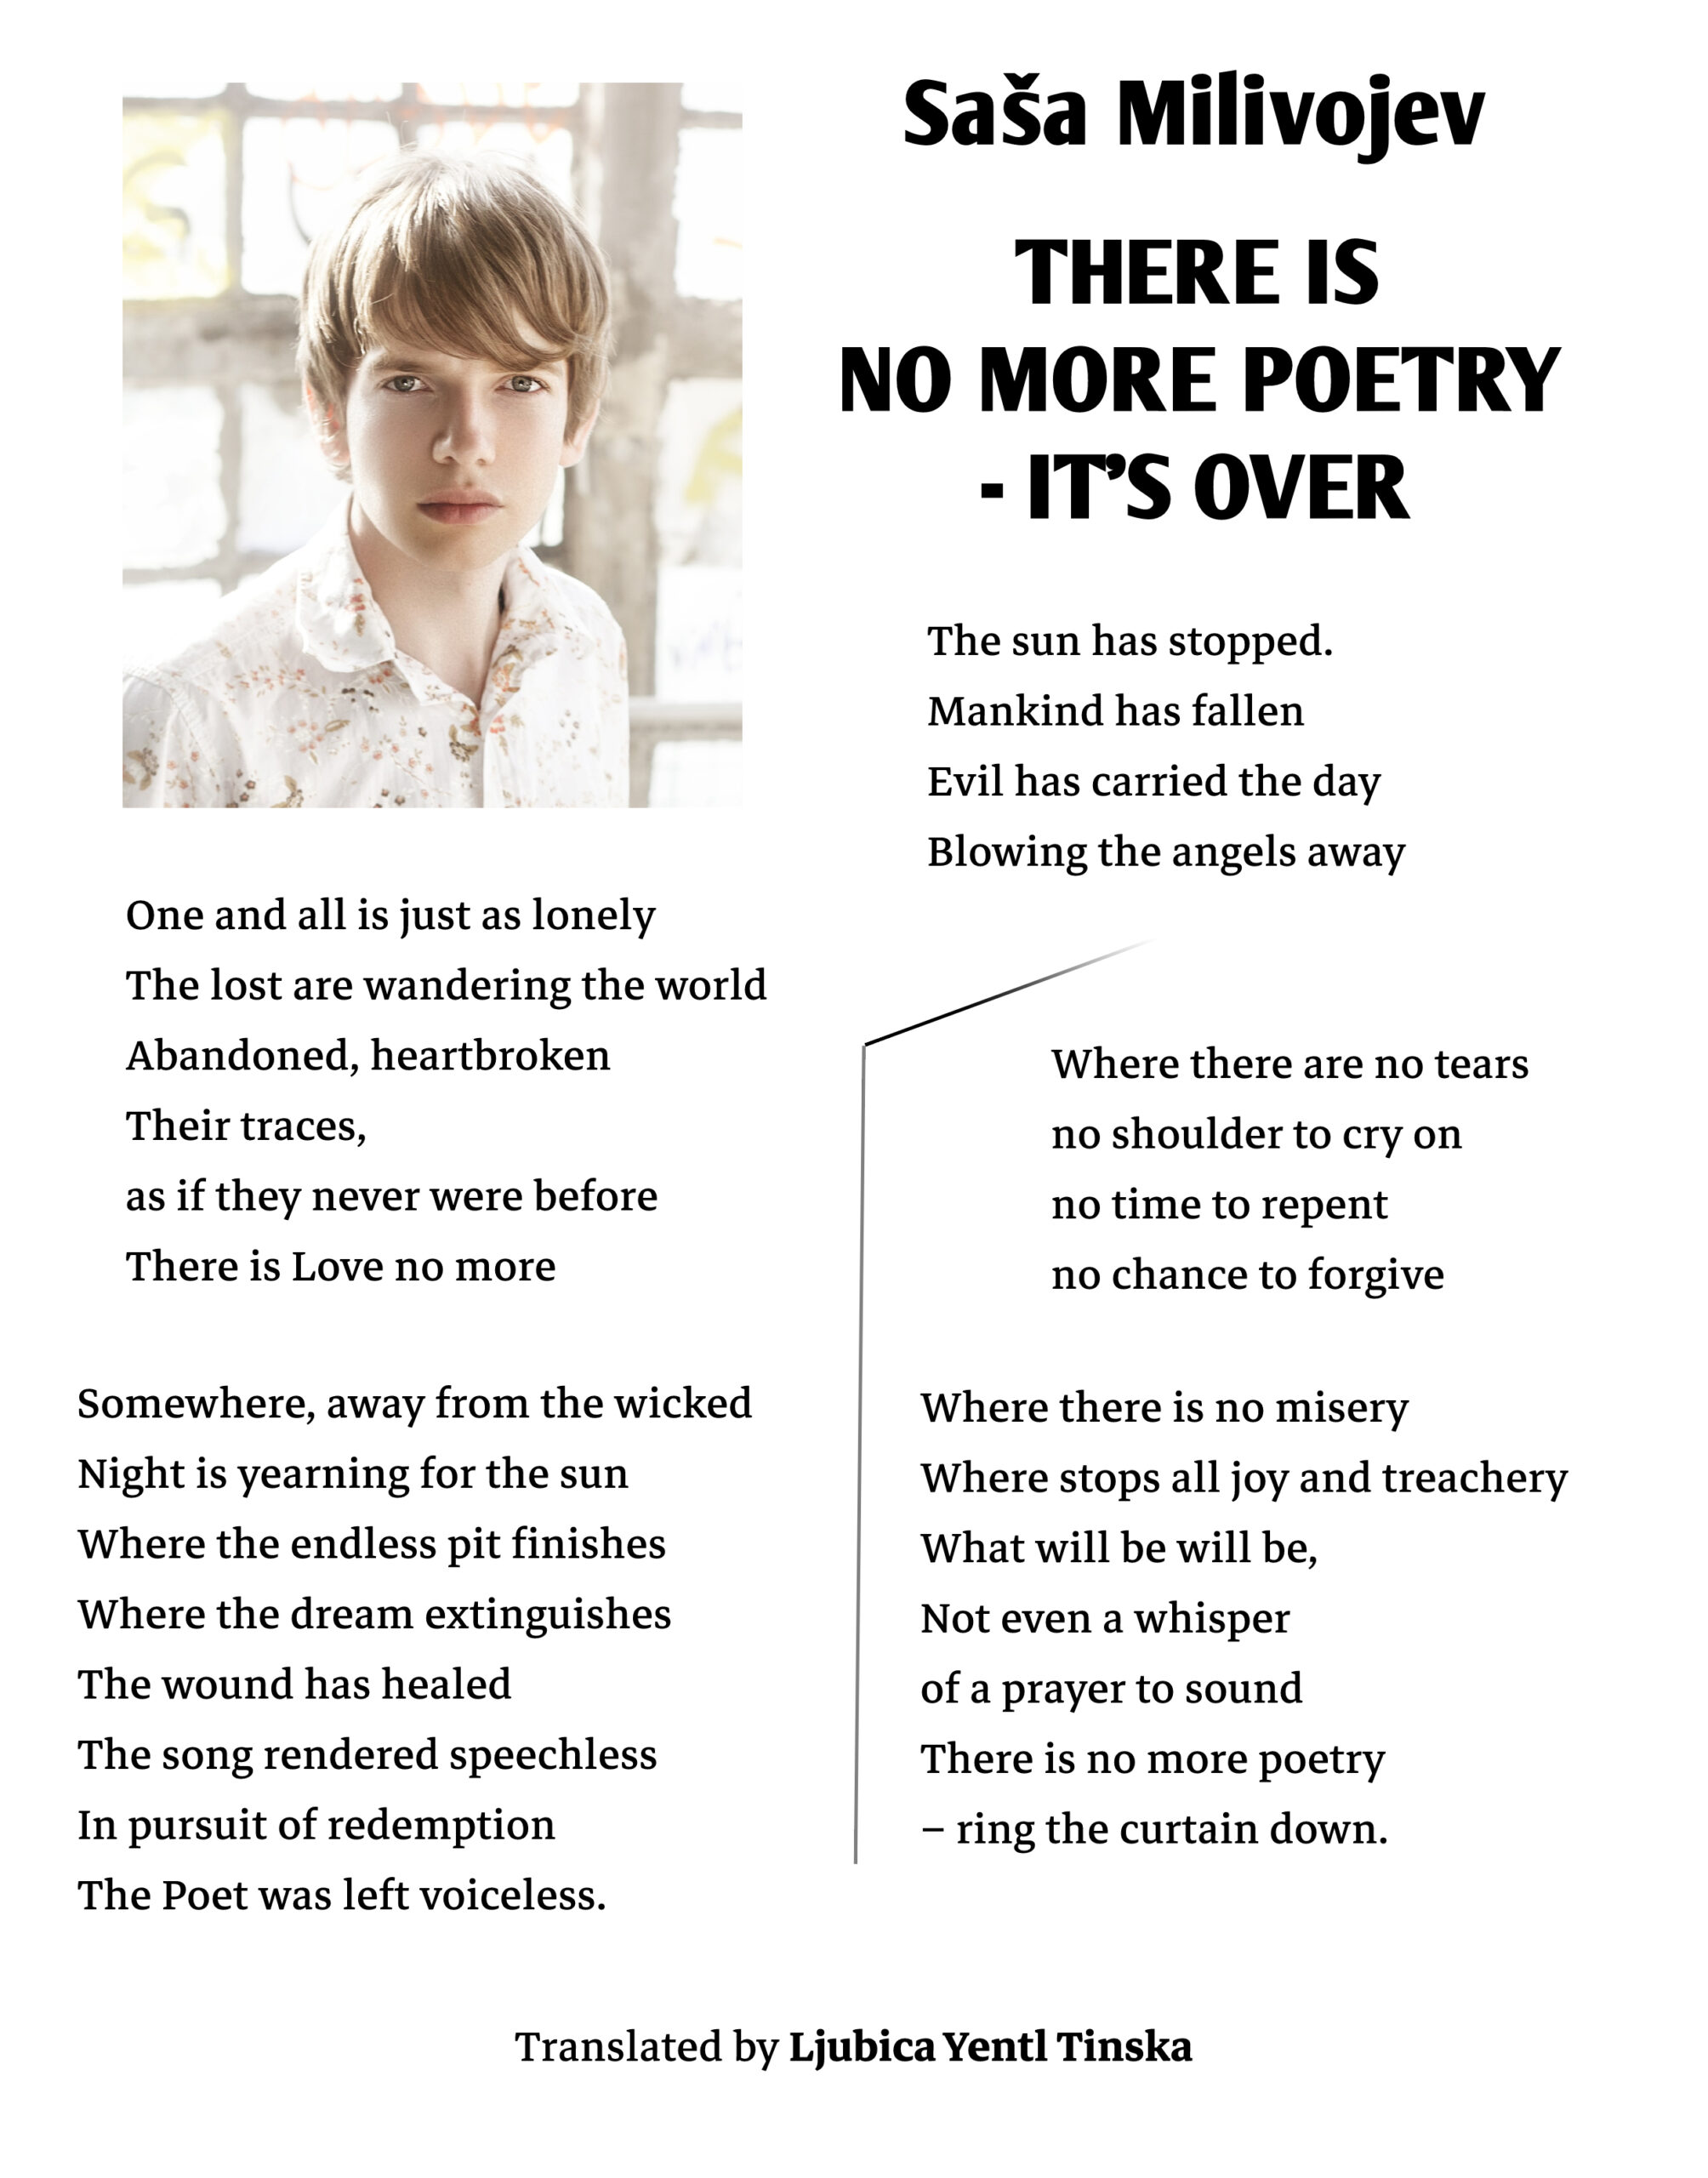 Saša Milivojev - THERE IS NO MORE POETRY, IT'S OVER